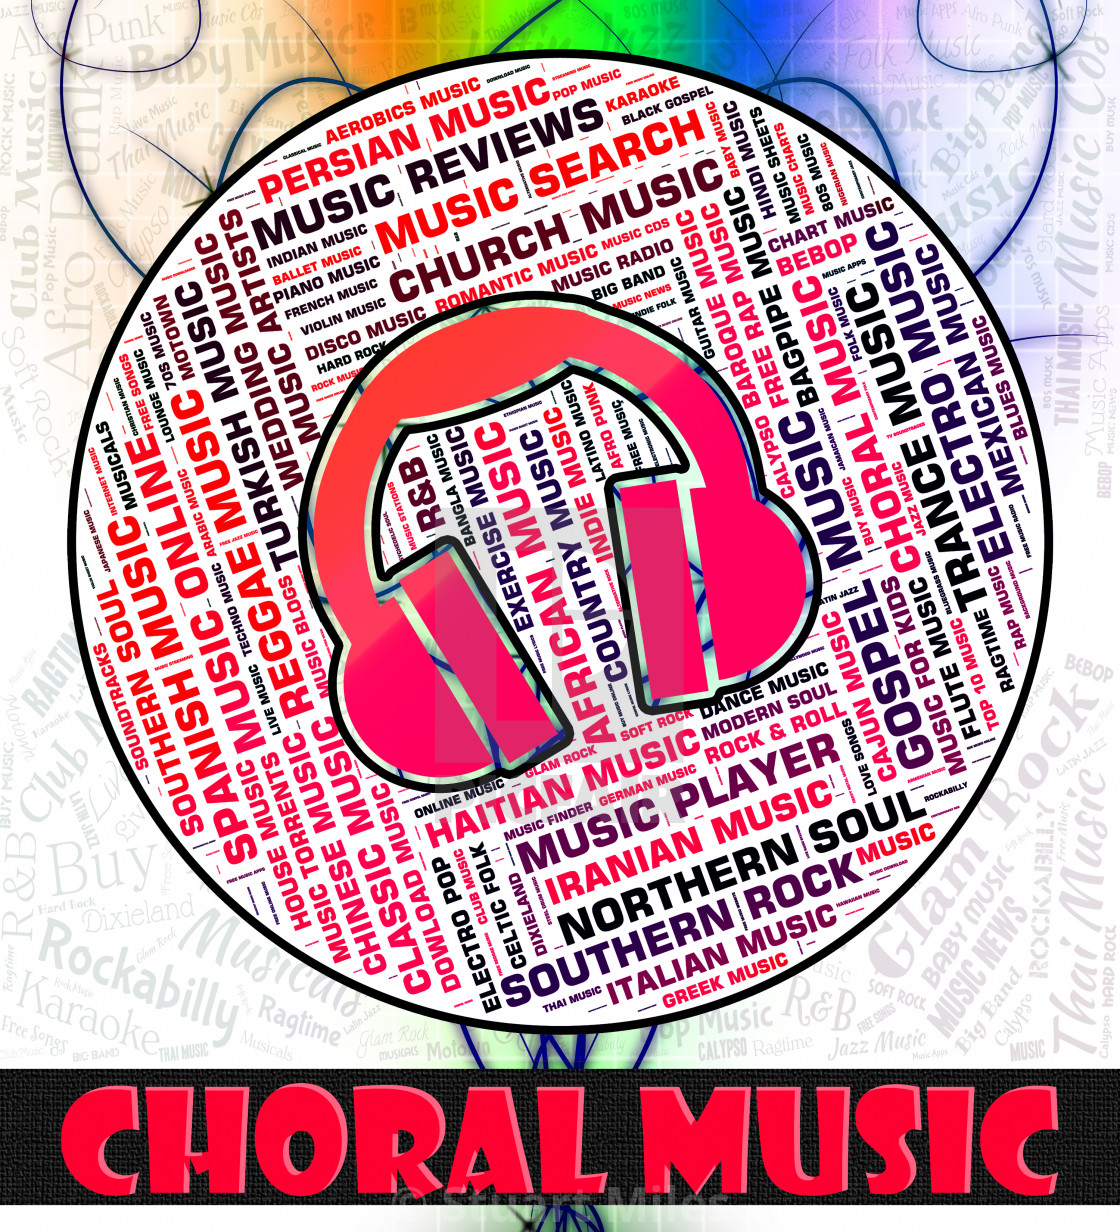 Choral Music Indicates Sound Track And Acoustic - License, download